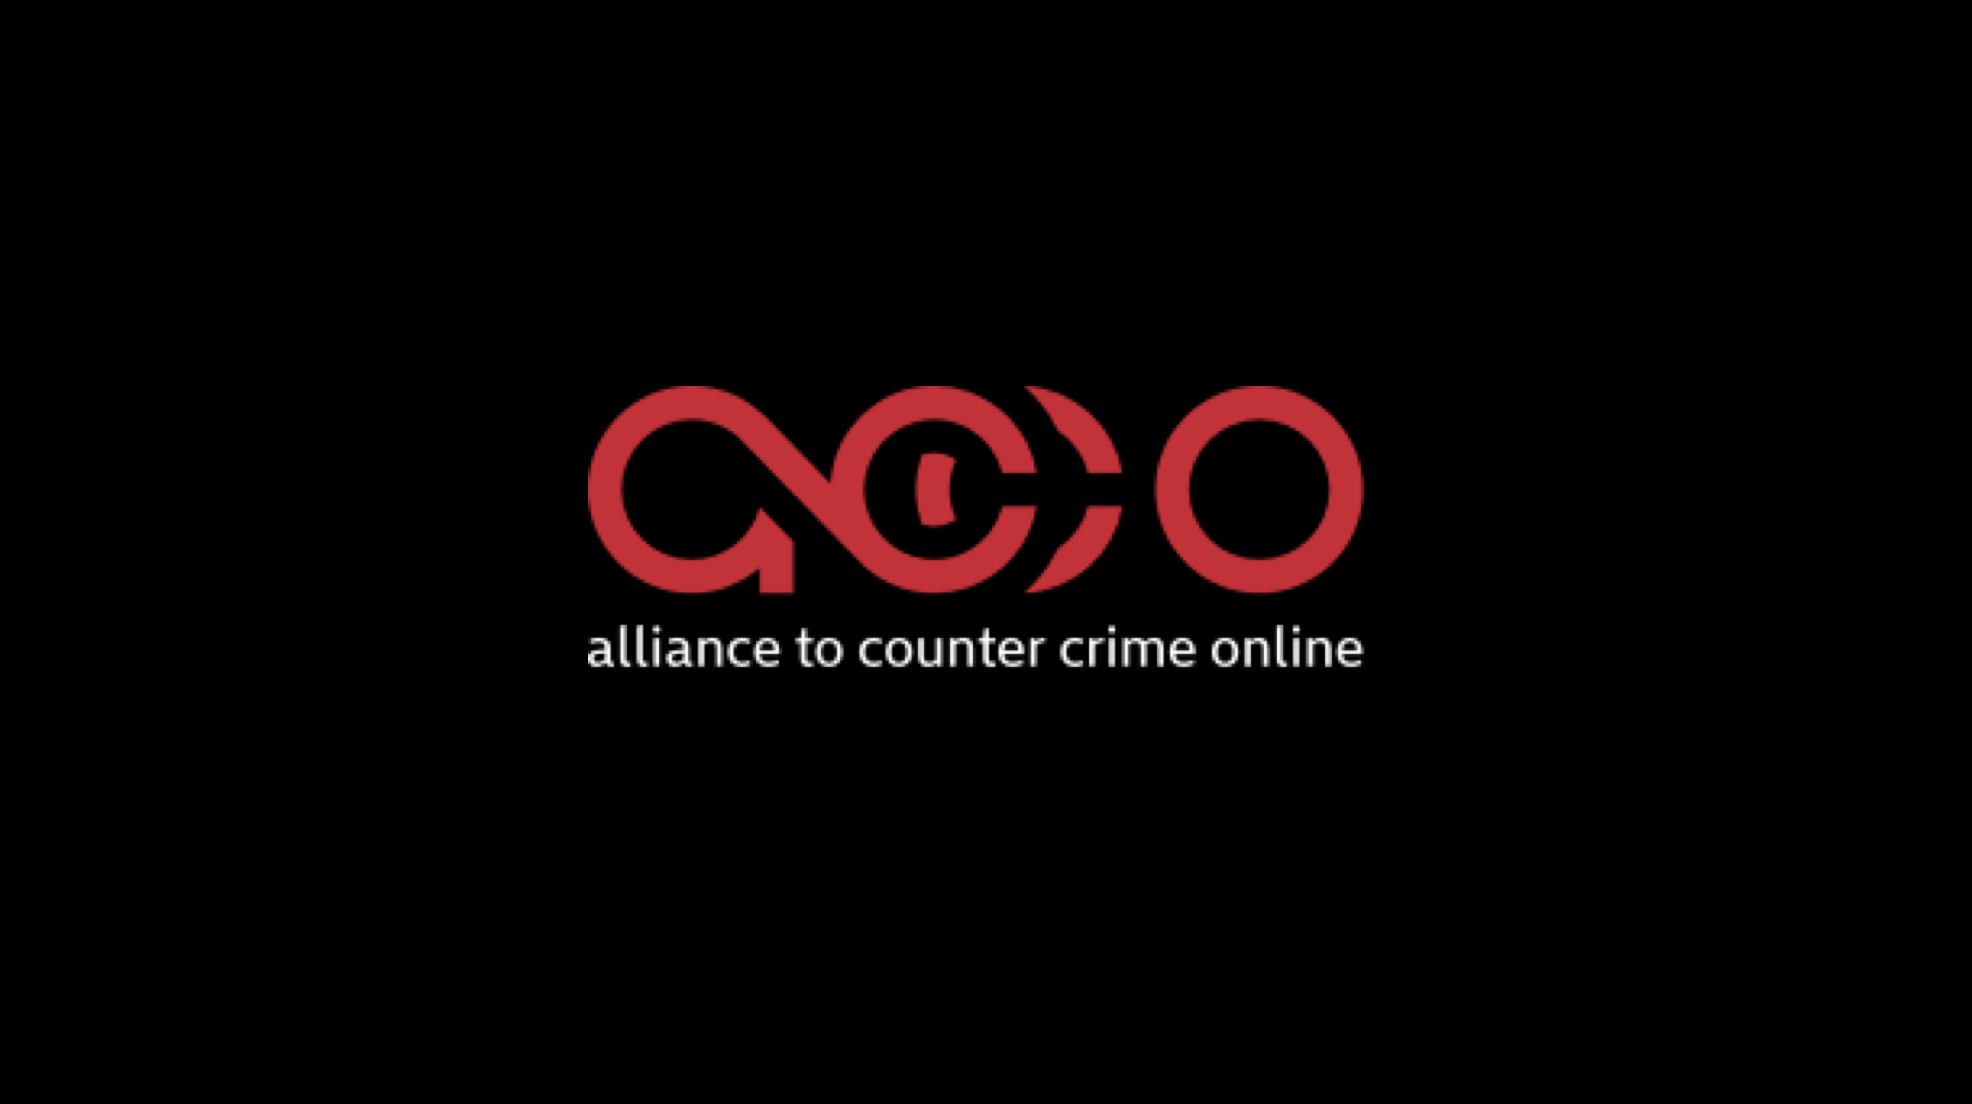 Alliance to Counter Crime Online   The Alliance to Counter Crime Online is made up of a group of academics and investigators trying to fix a serious threat. We are fighting to push dangerous organized crime activity off social media platforms.   CINTOC started ACCO to be a force multiplier, bringing different subject matter experts under one roof to address one of the hardest issues of our time, social media.